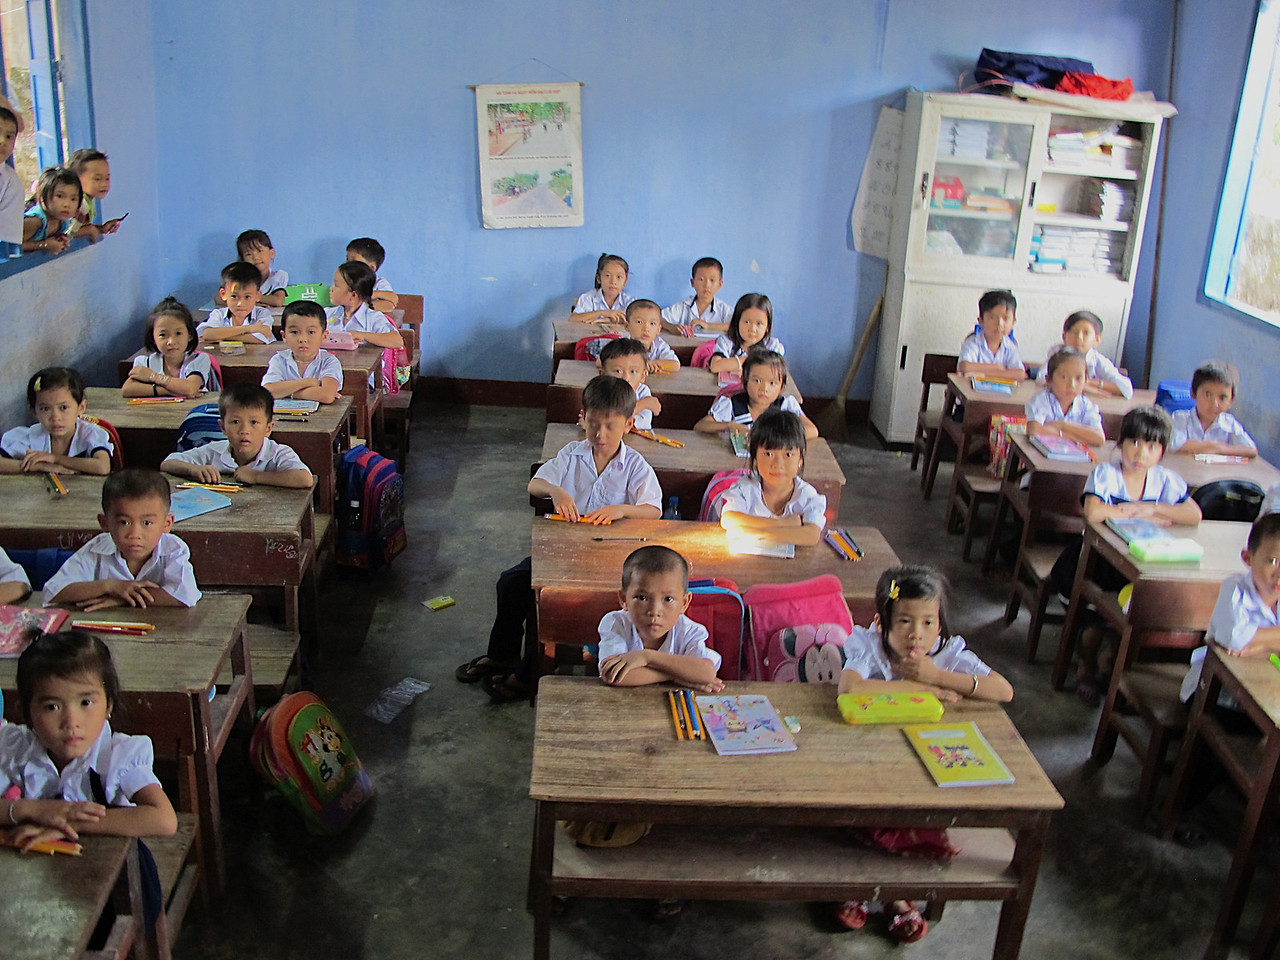 Kids here can always use basic supplies like rulers, pencils, pens, paper, solar calculators, etc.